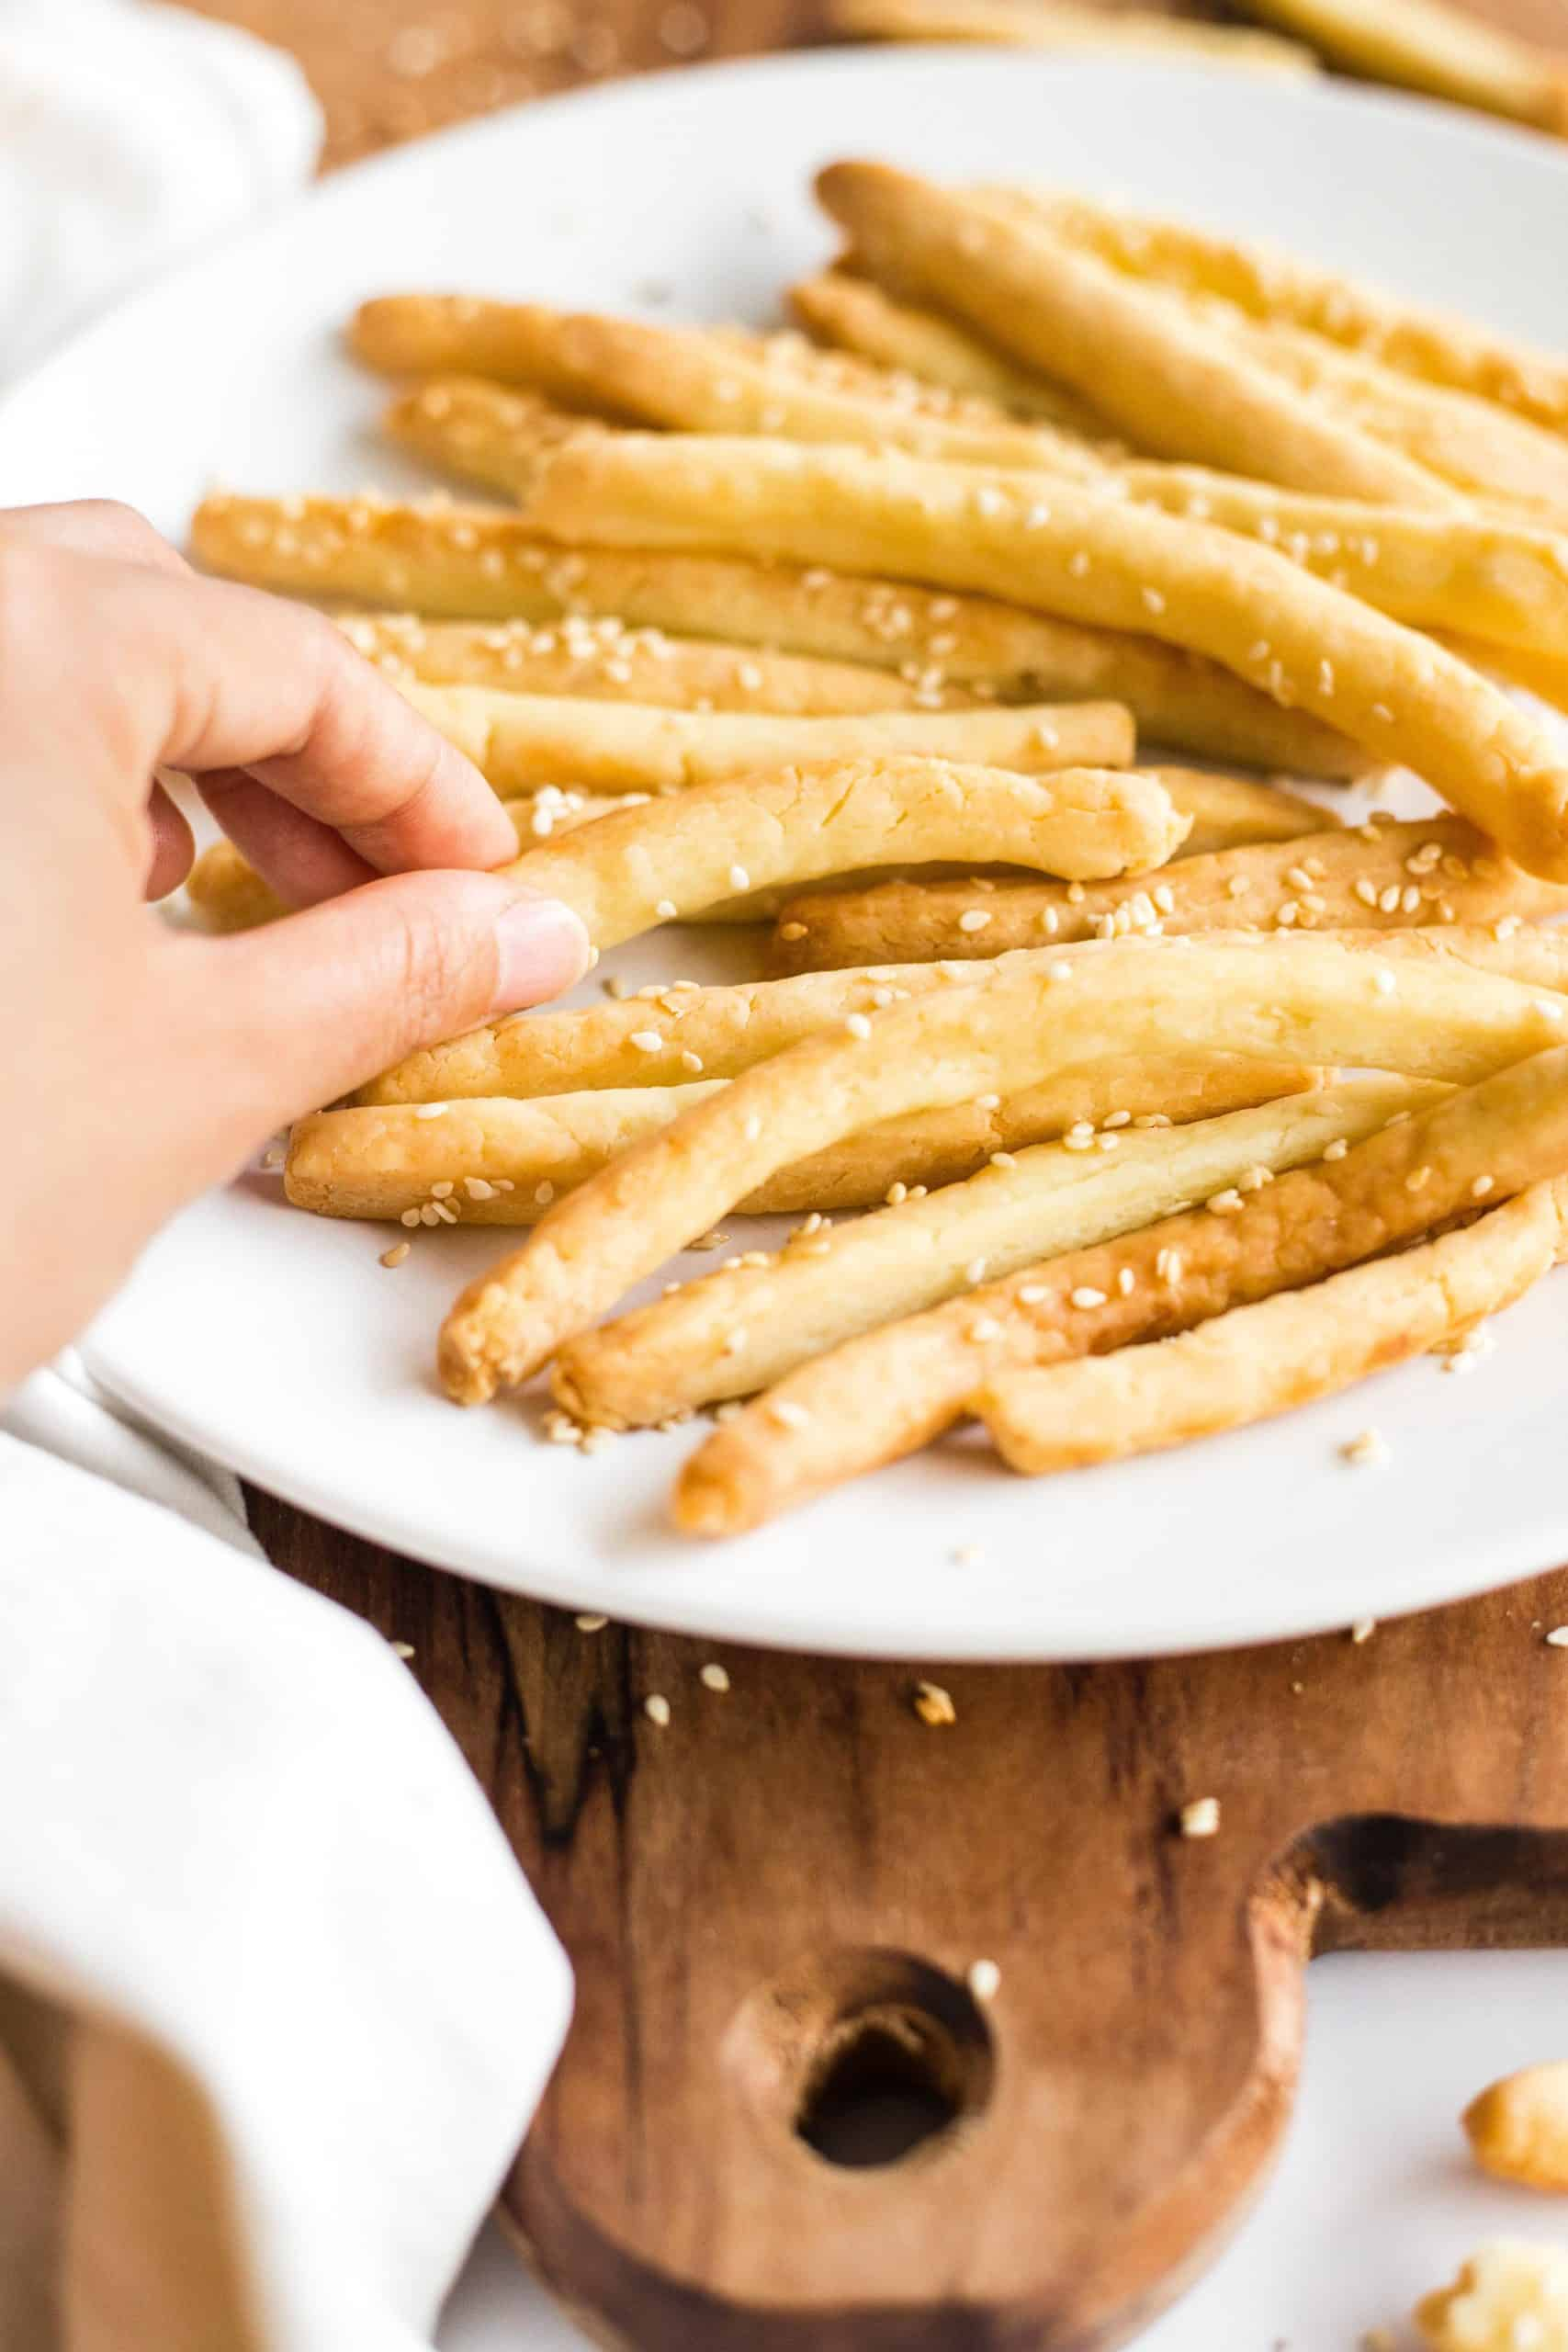 Hand reaching for a breadstick on a plate full of gluten-free breadsticks.